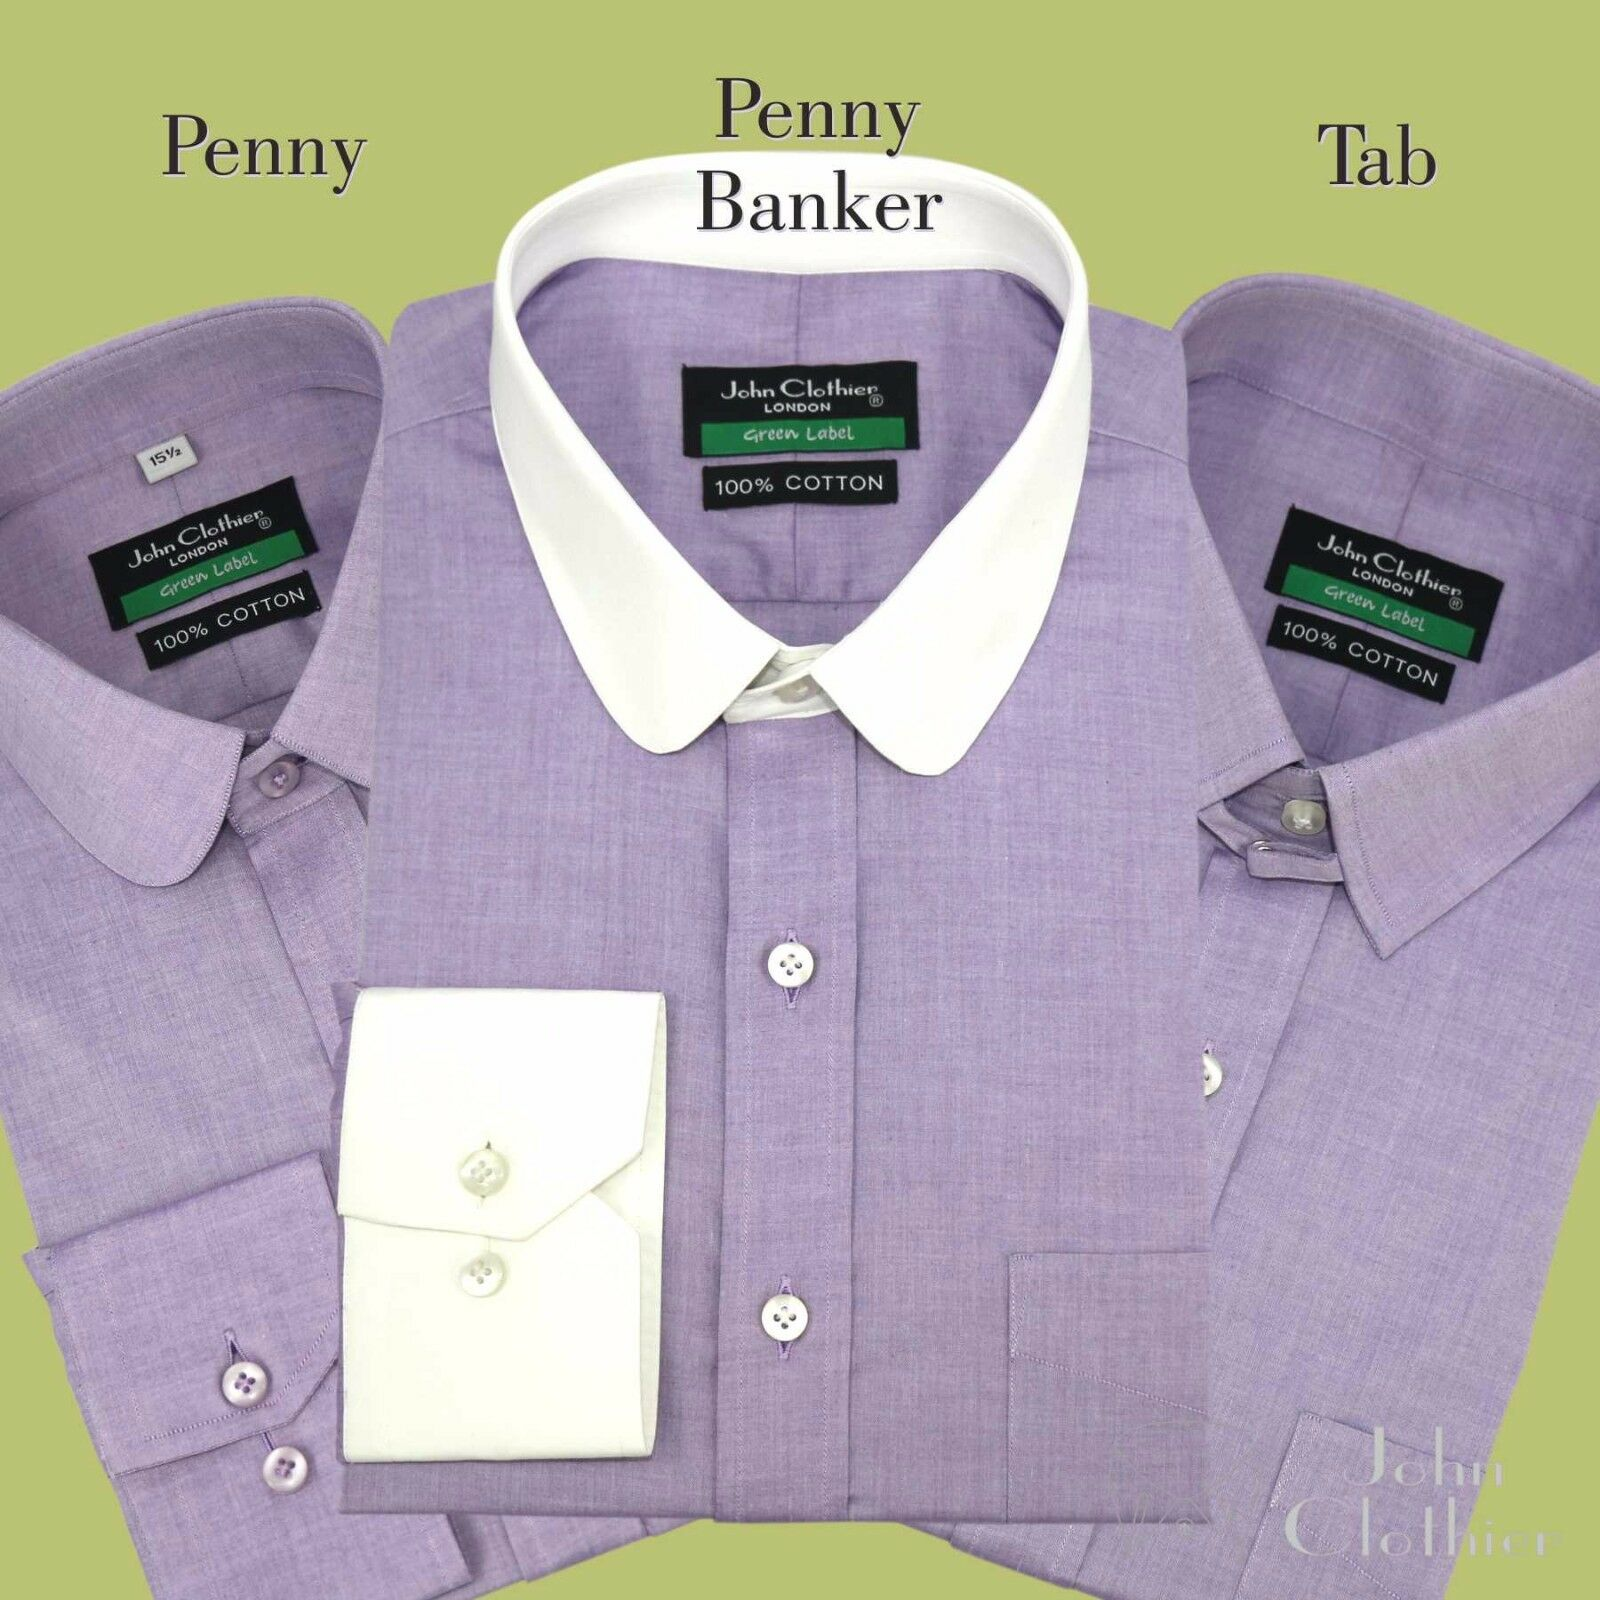 Herren Bankers Lilac lila shirt Penny collar Tab collar Cotton Gents Club Loop